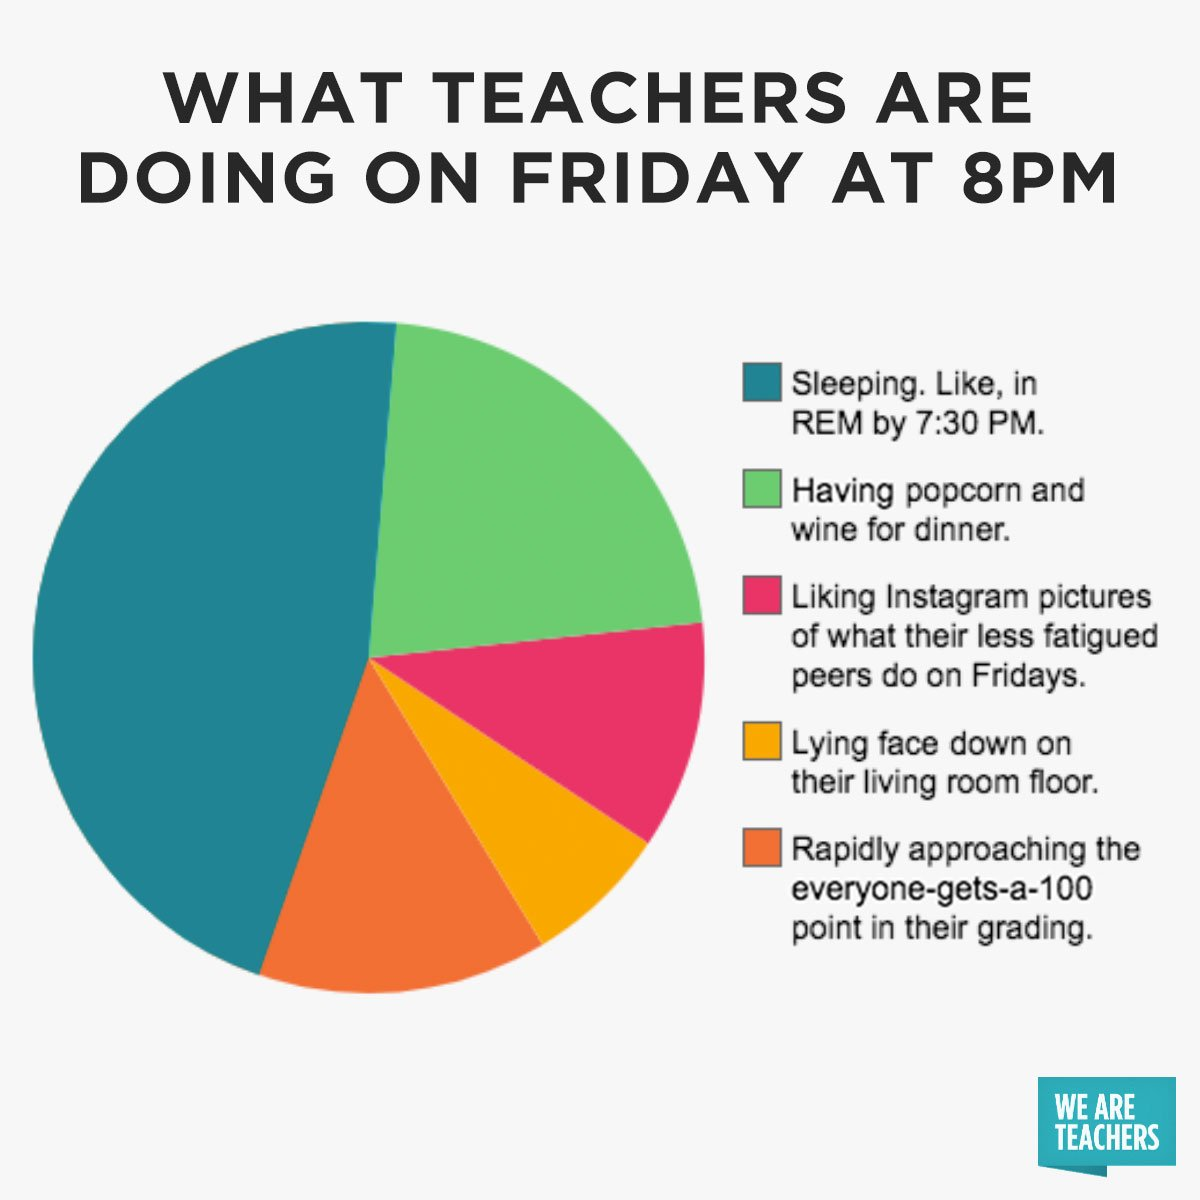 Accurate? 😂 #teacherlife https://t.co/ak1o4piw1H